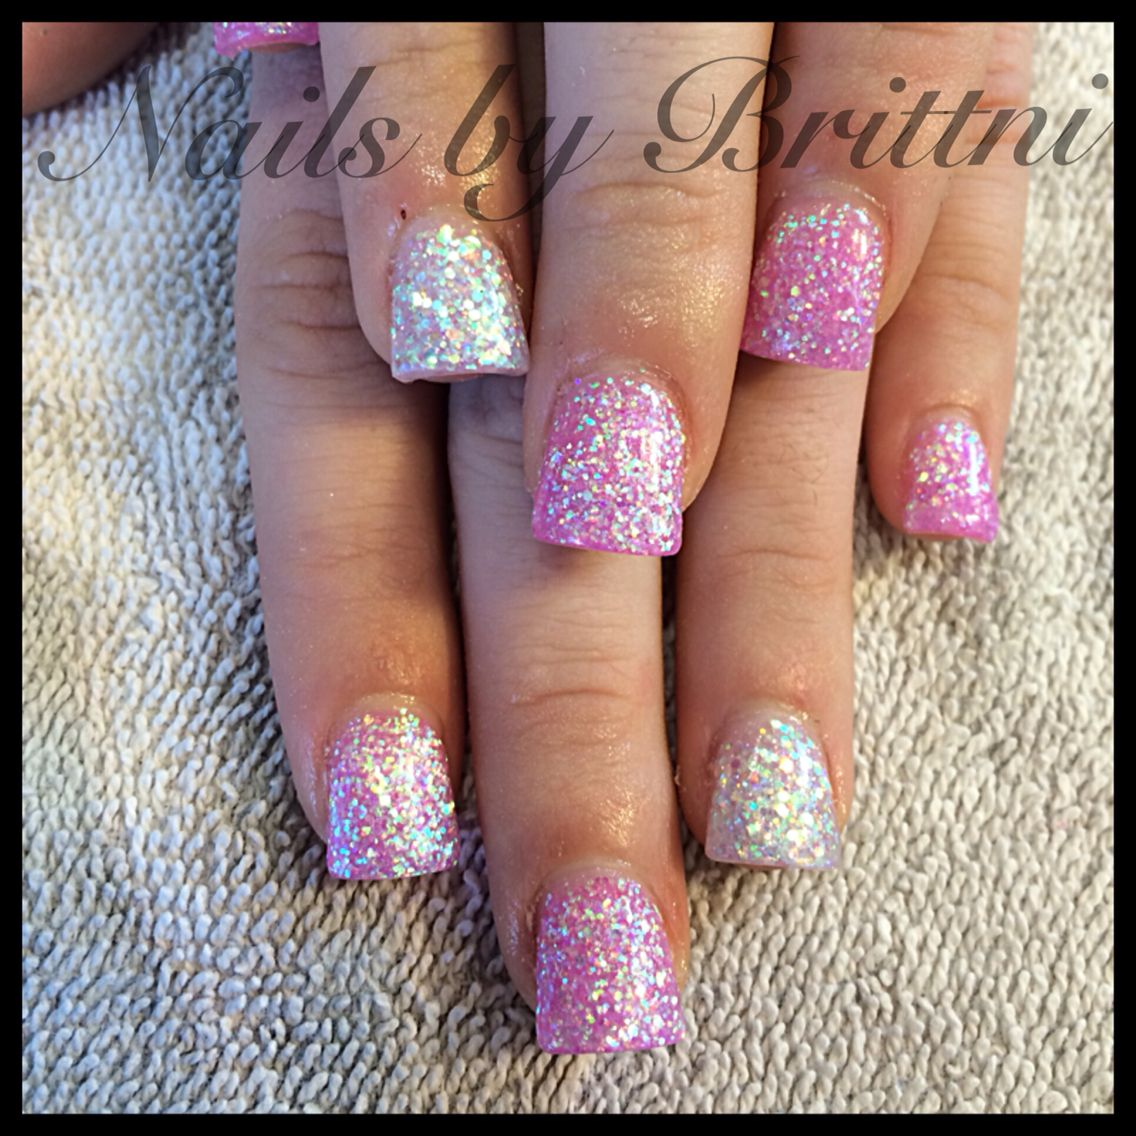 Short Flare Acrylic Nails Flare Nails Winter Nails Acrylic Flare Acrylic Nails